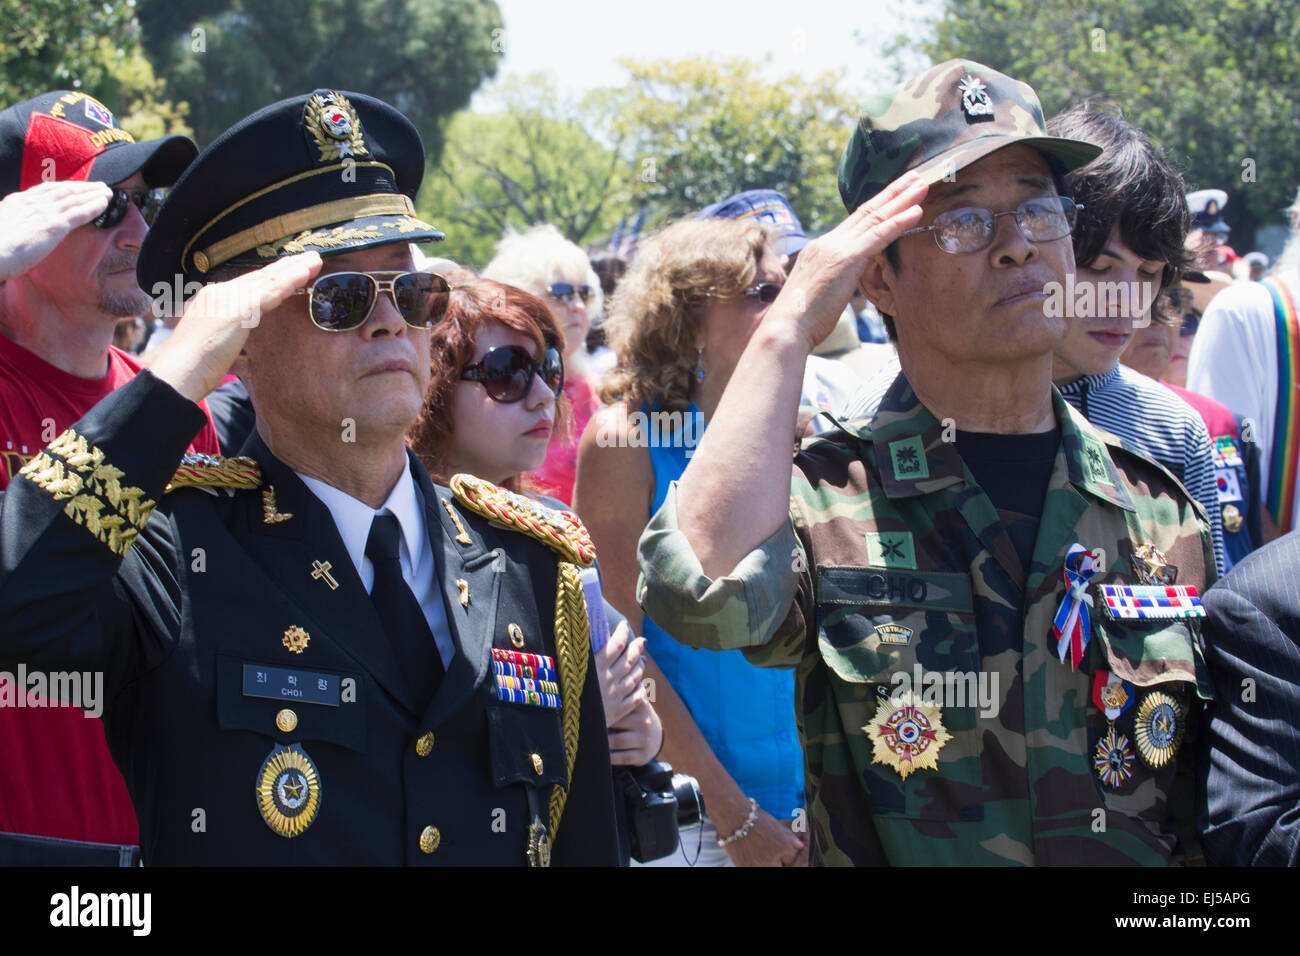 Vets saluting at Los Angeles National Cemetery Annual Memorial Event, May 26, 2014, California, USA - Stock Image